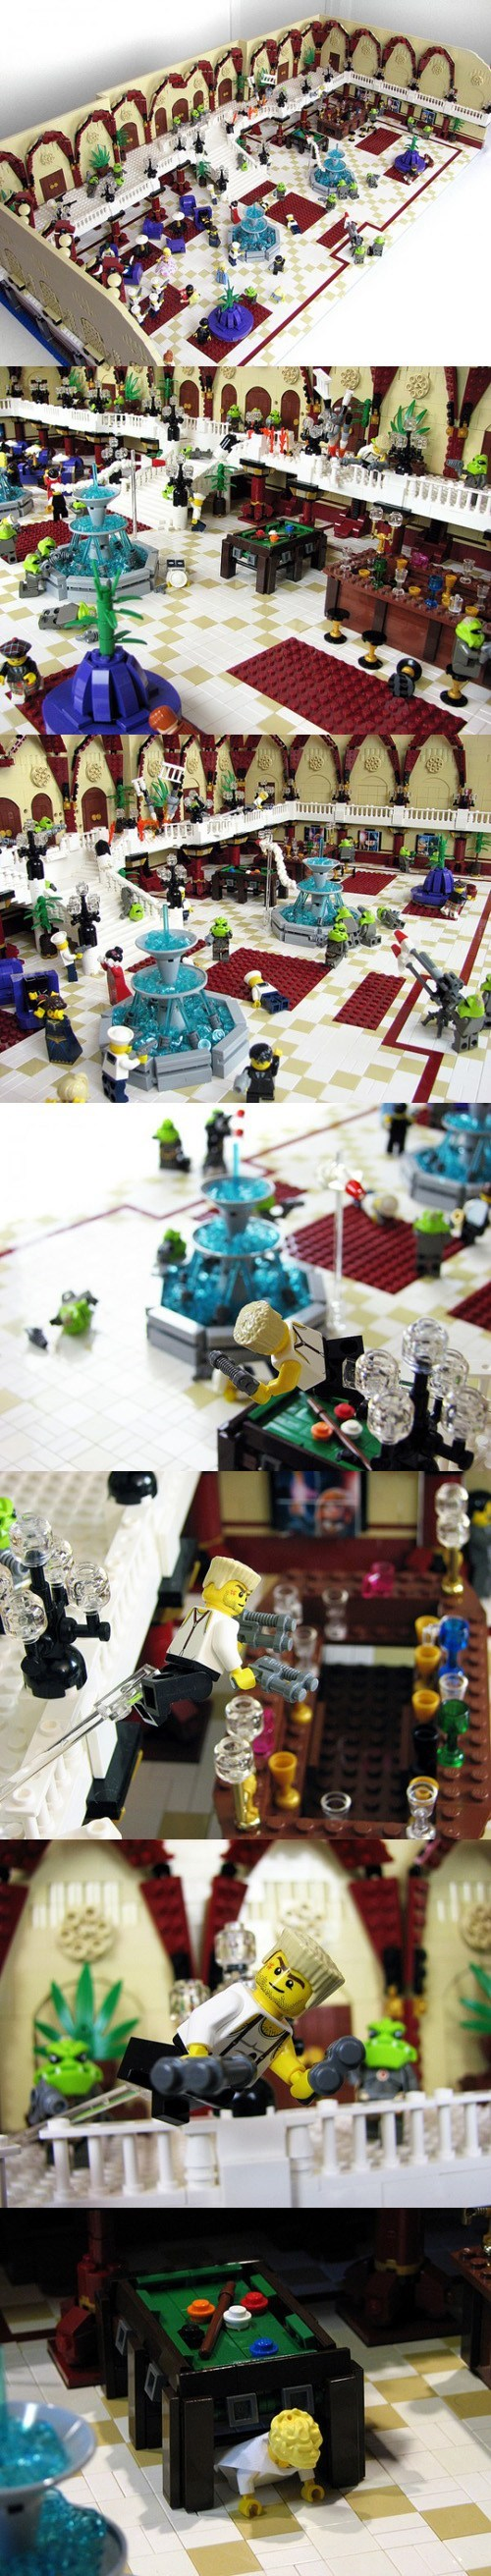 Fhloston Paradise,lego,scene,building,the fifth element